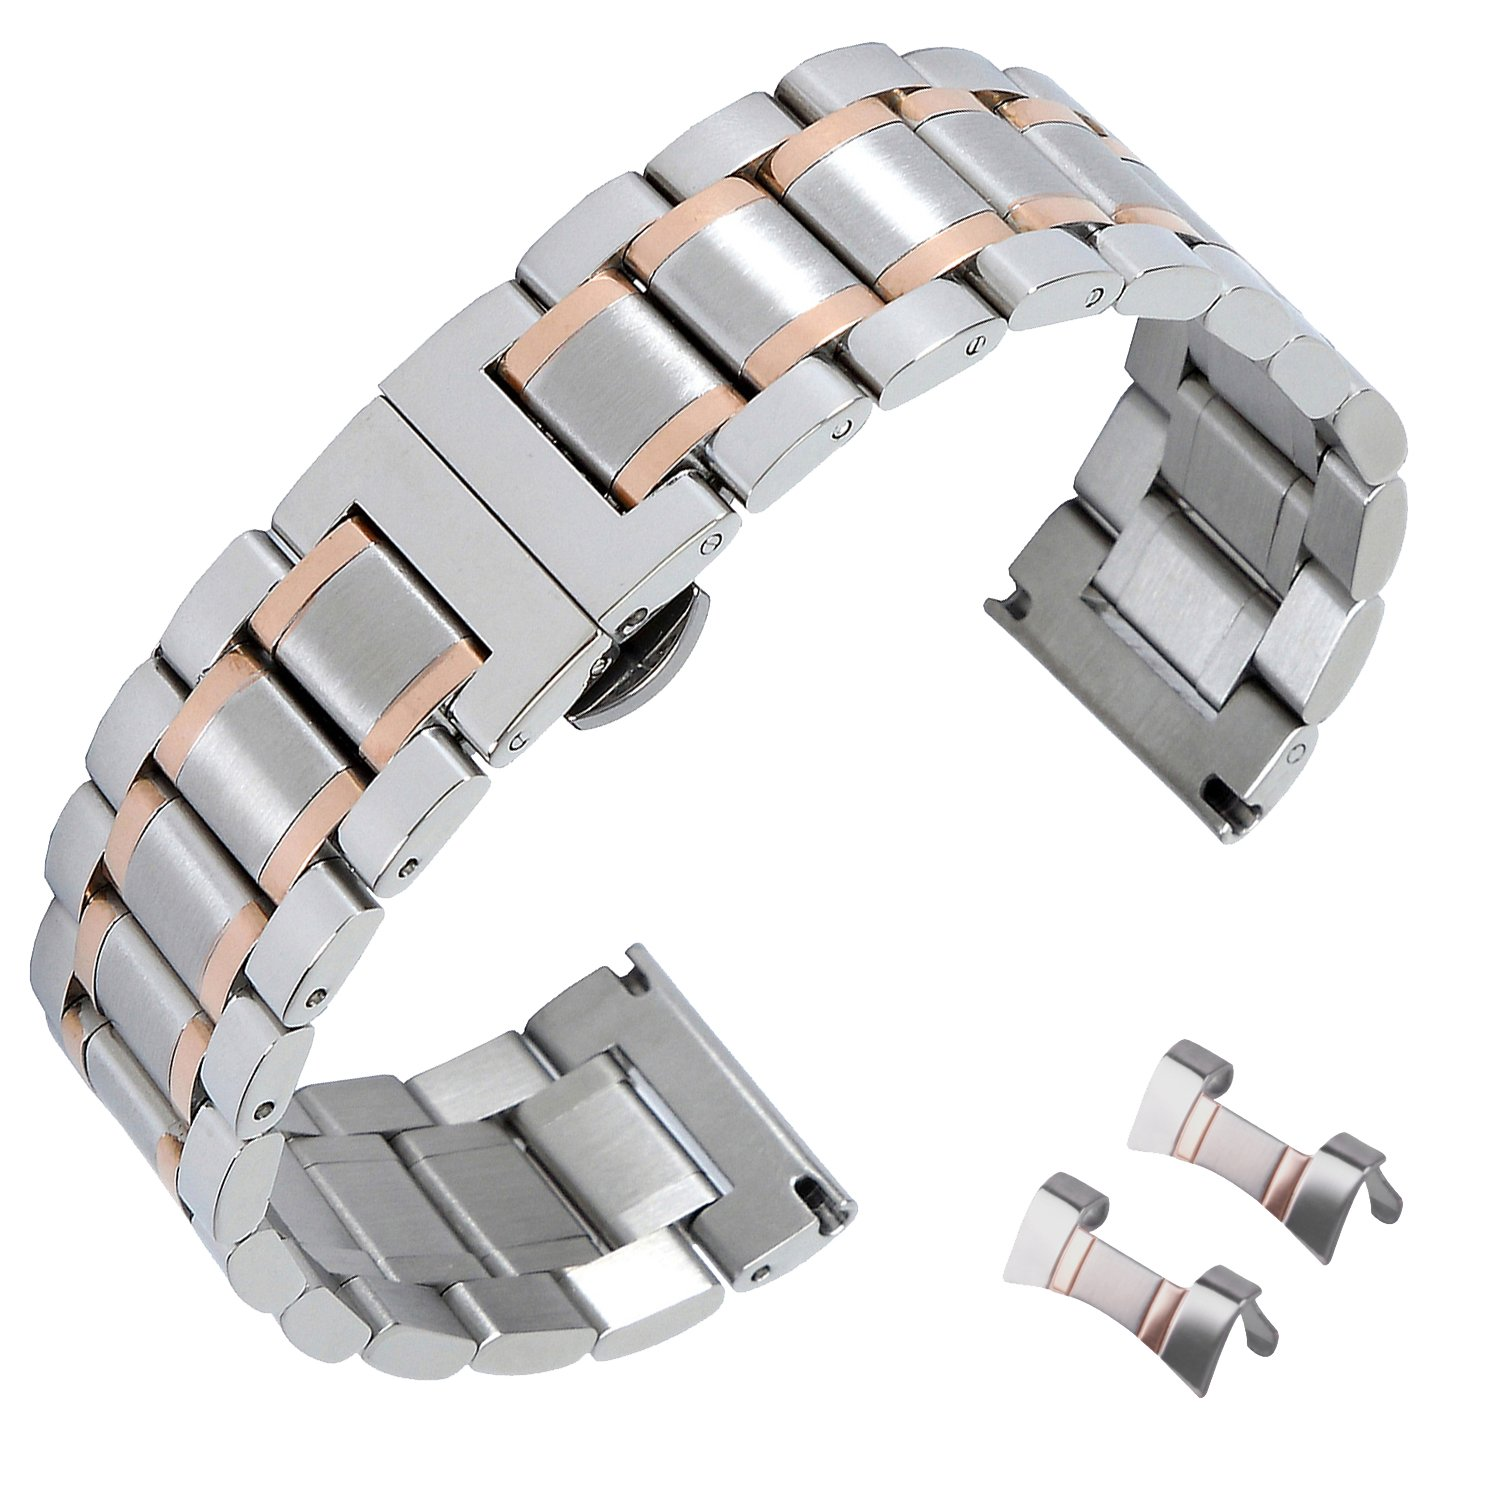 18mm Stainless Steel Watch Bands Replacement Strap Clasp Strap Bands Strap Watchband Strap Wristband